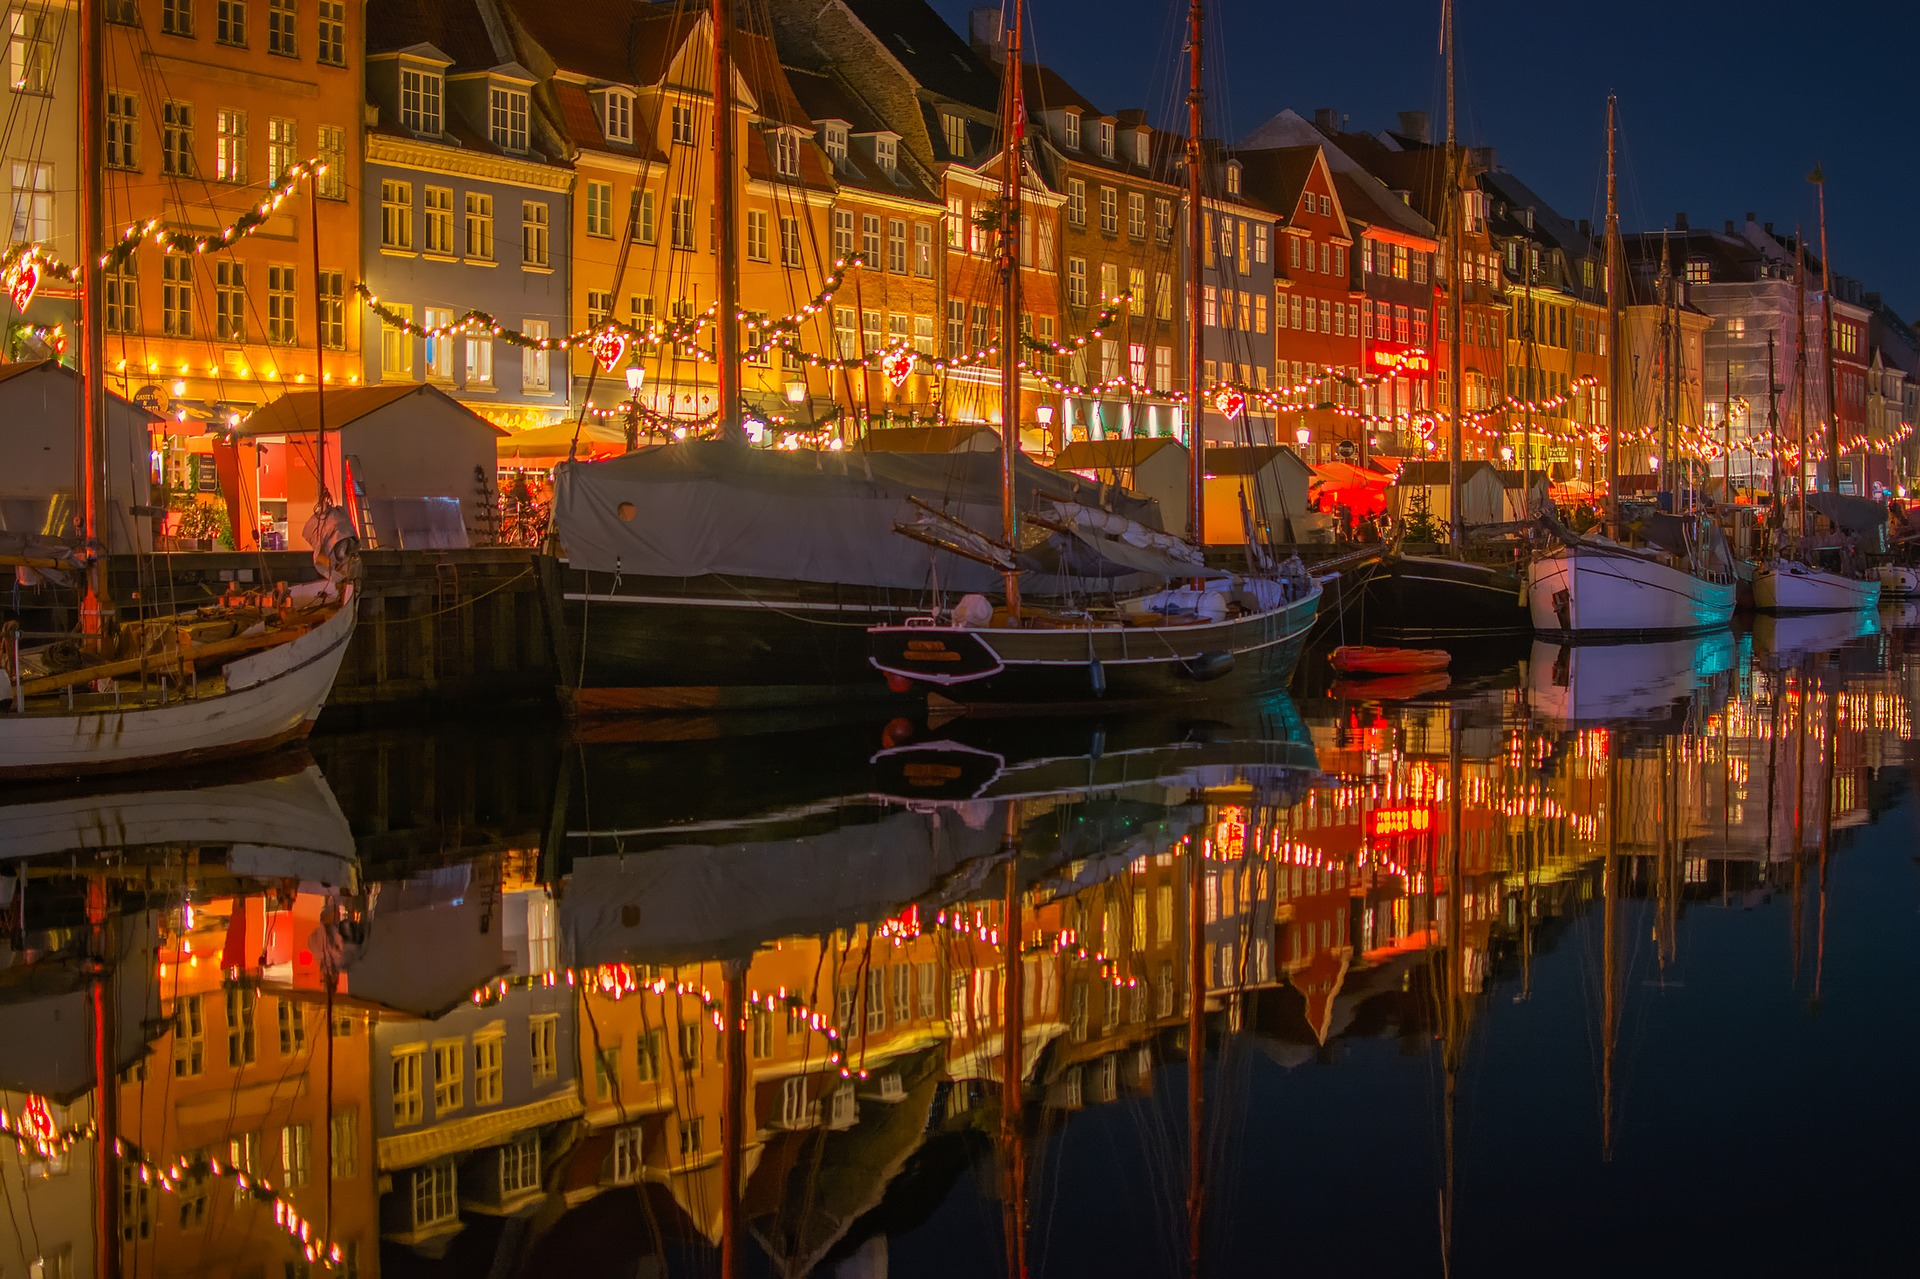 The best time to visit Denmark